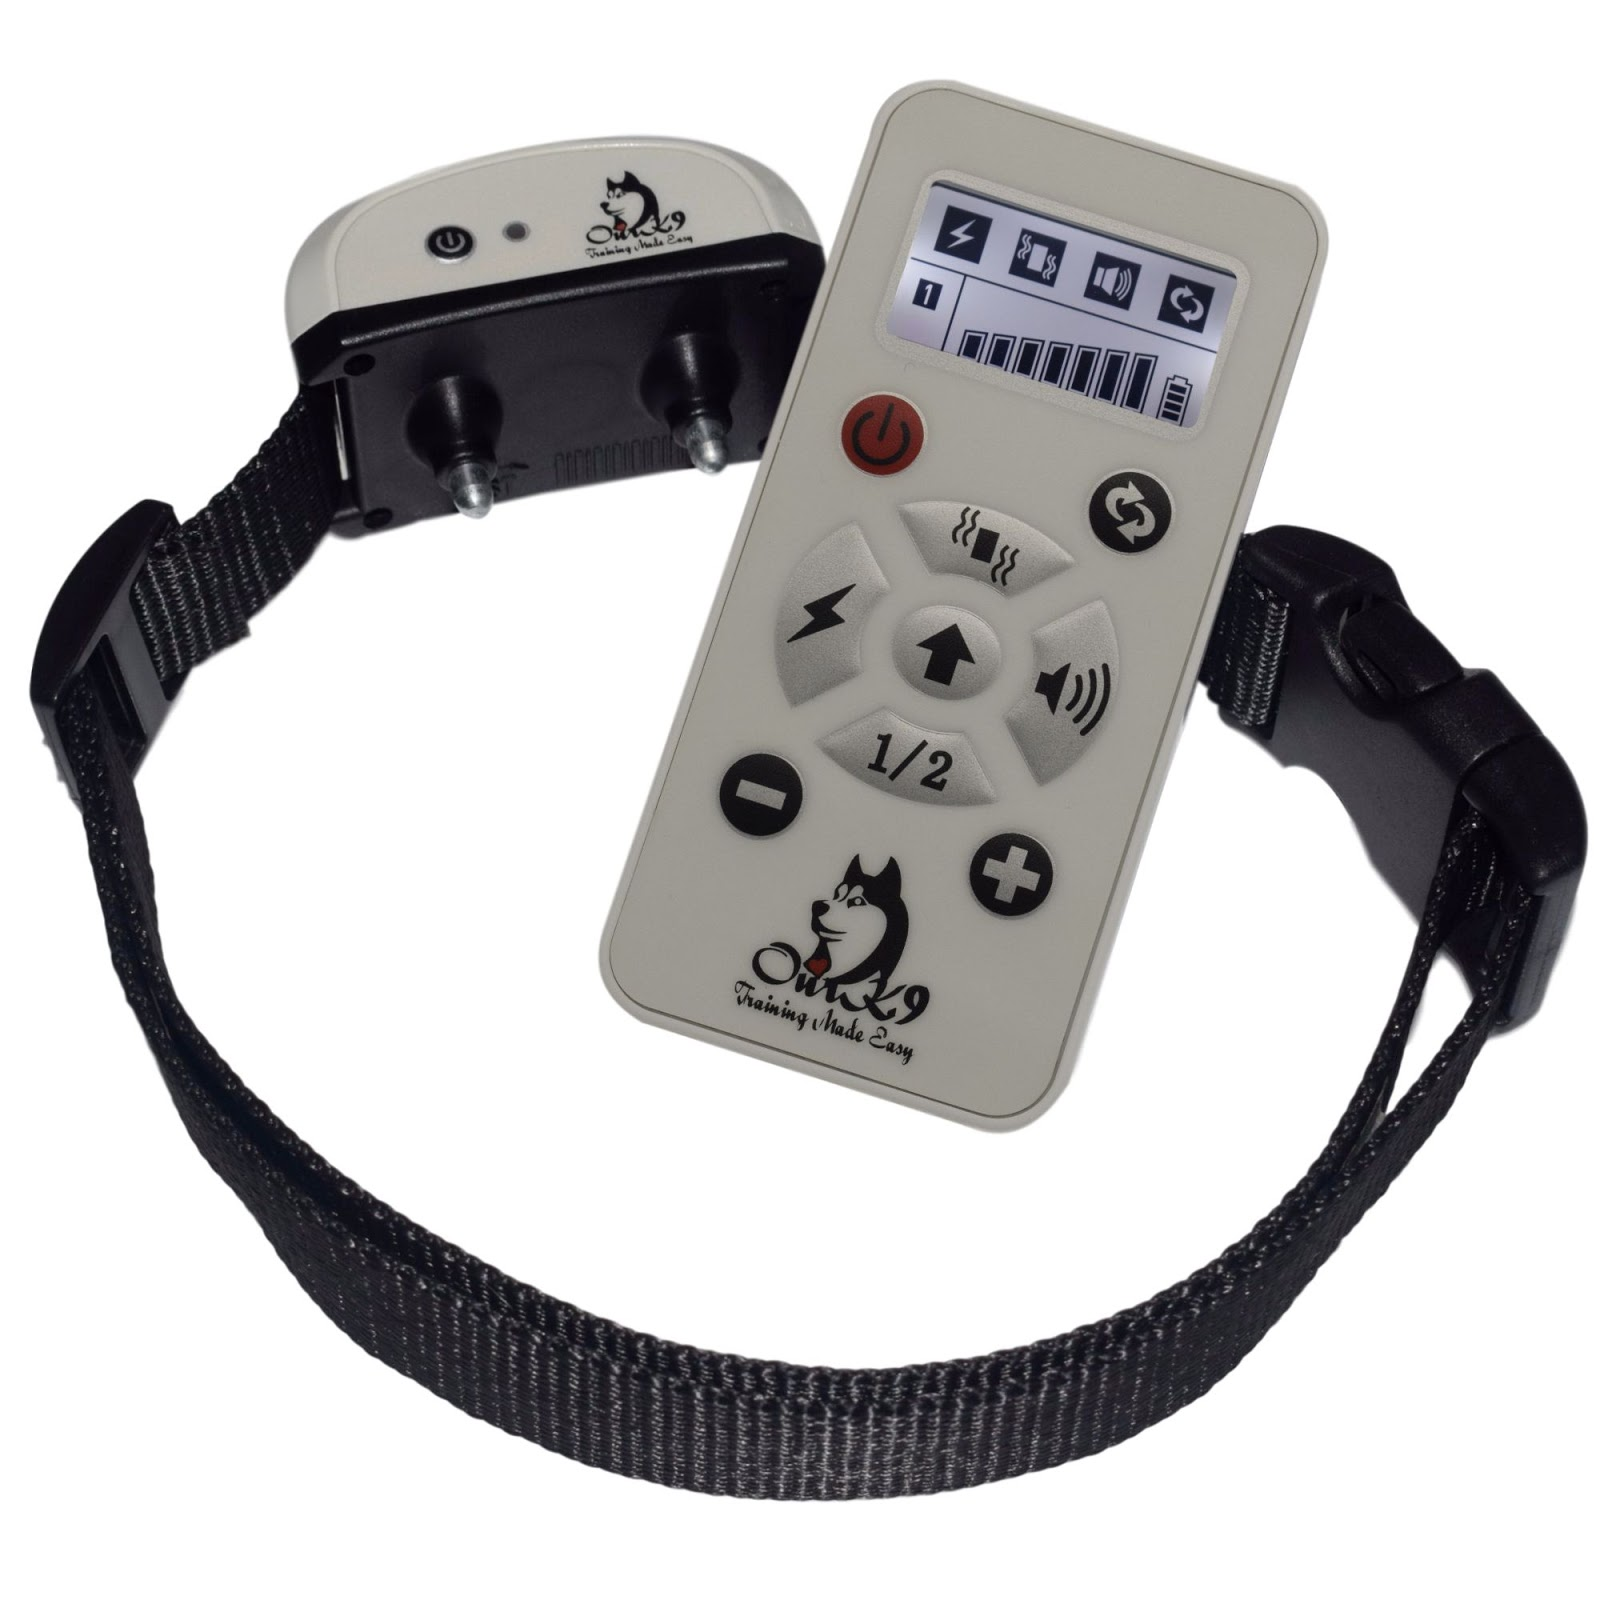 a0f33b6b676b I received a Our K9  IVORY  Remote Training Collar from Our K9 in exchange  for an honest review. I really like this product for training my dog when  he is ...